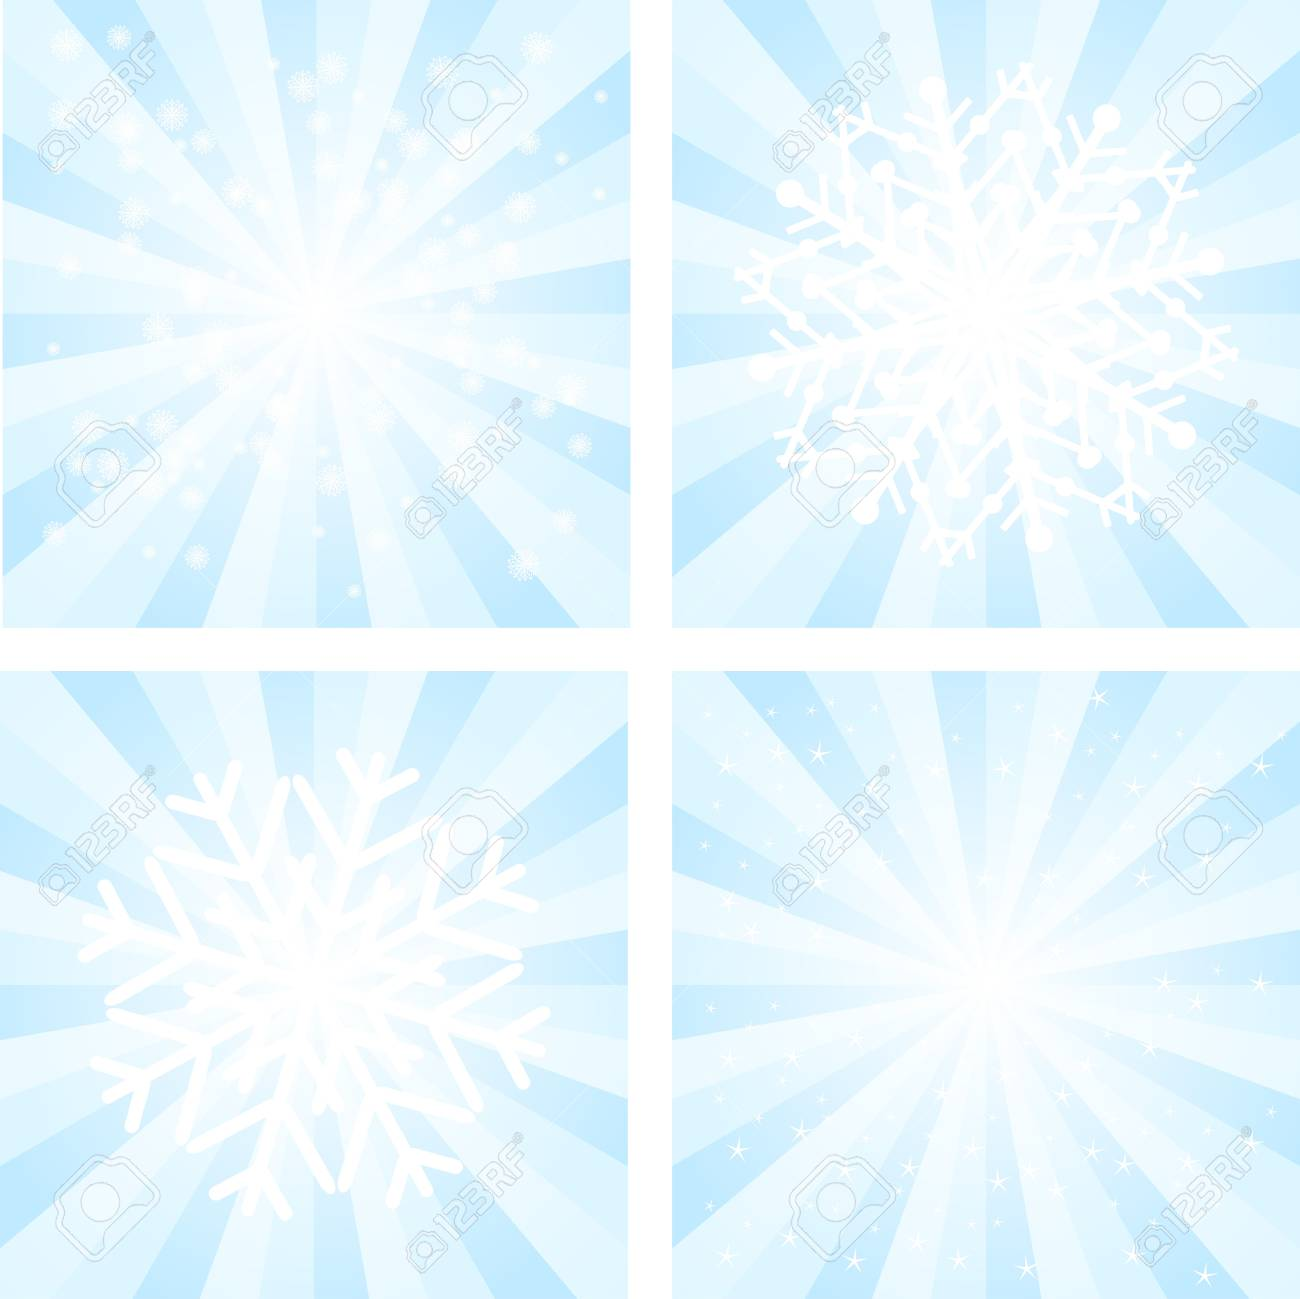 Collections of Christmas backgrounds with snowflakes Stock Vector - 16455560